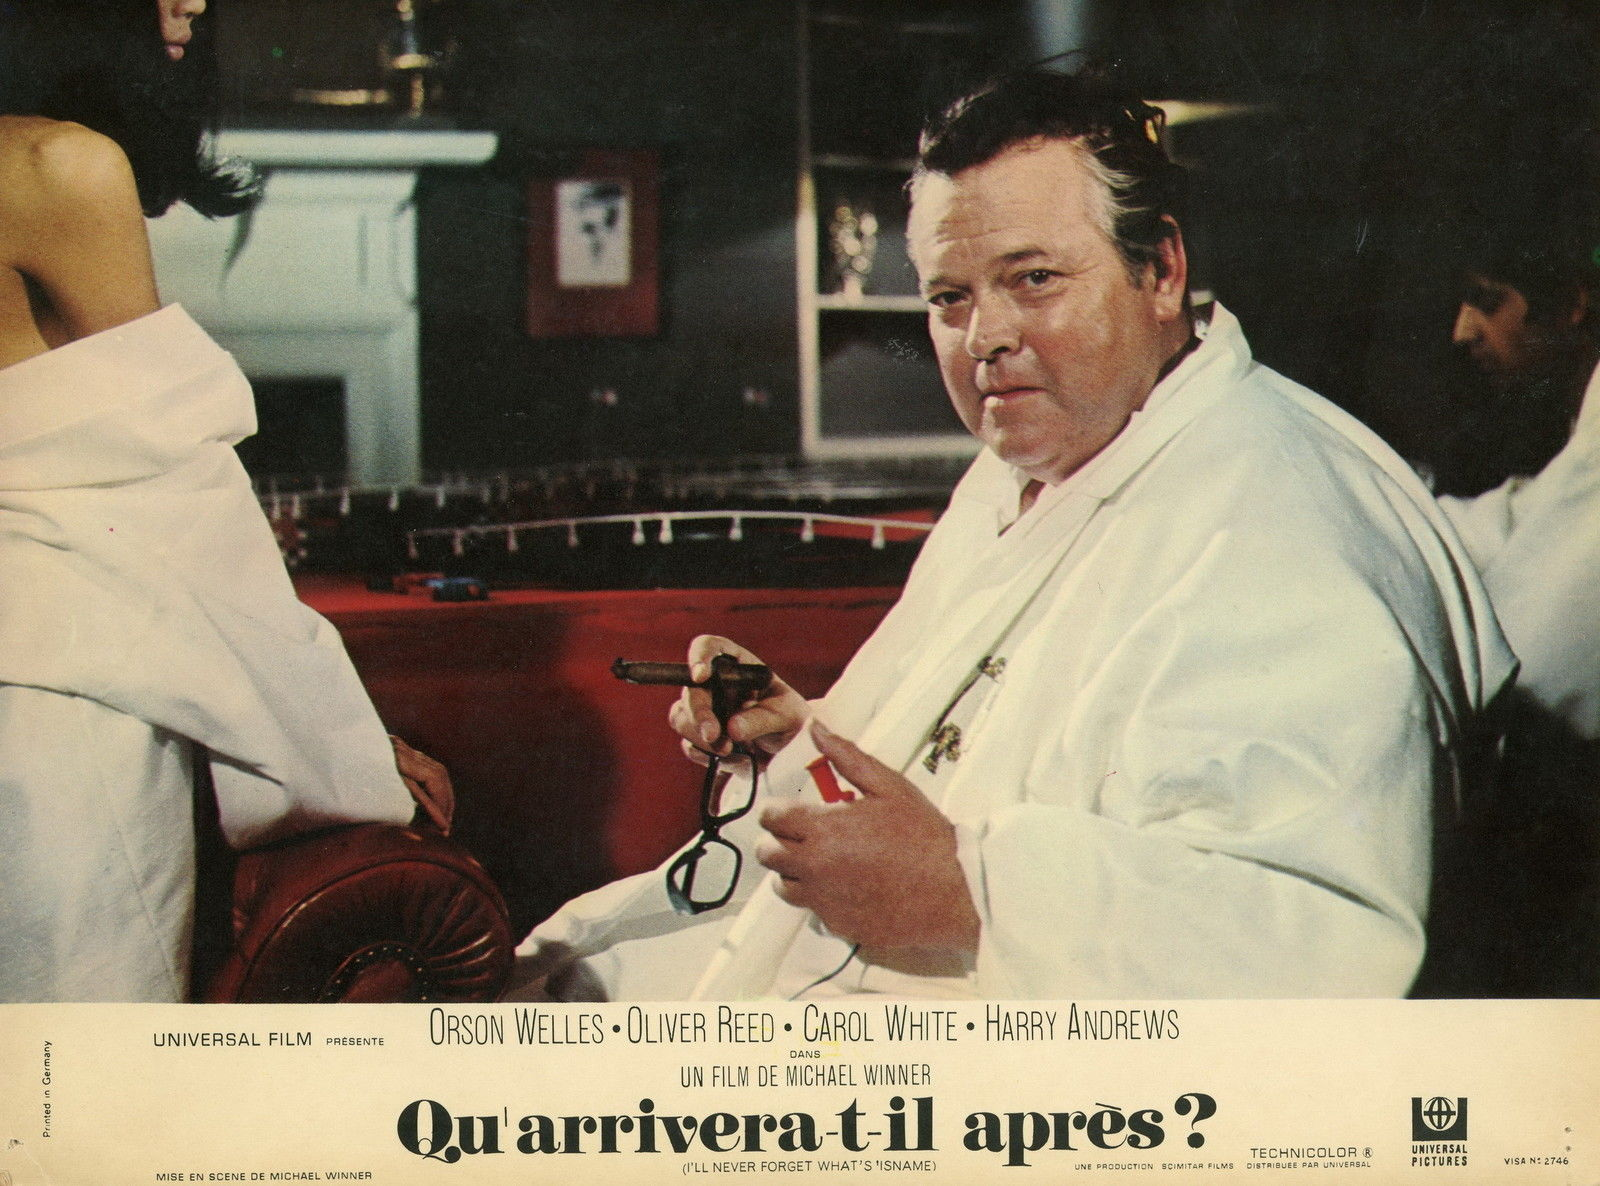 I'll Never Forget What's 'isname Orson Welles lobby Card